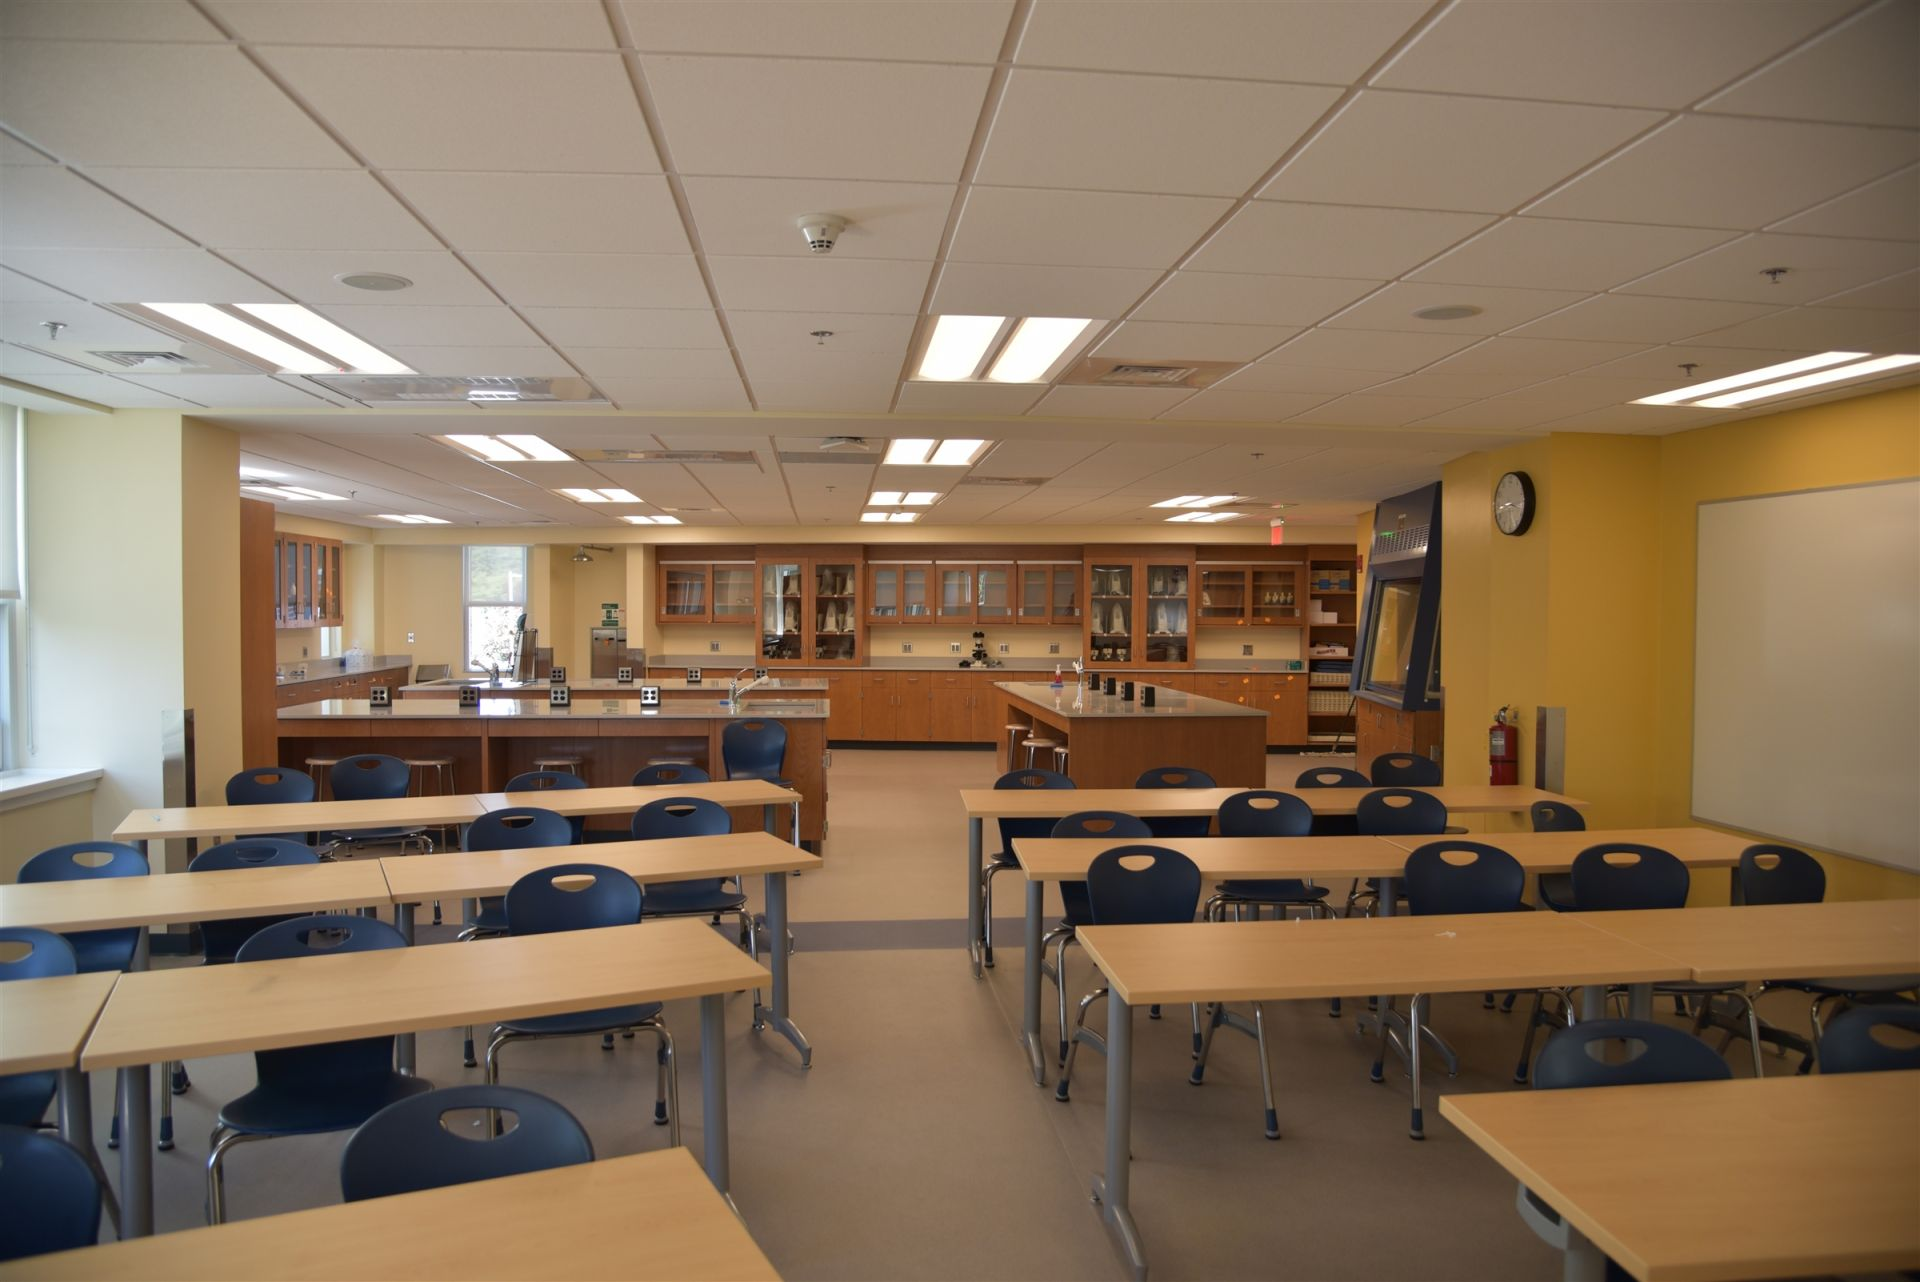 The 1,700 square-foot lab space was added in 2015.